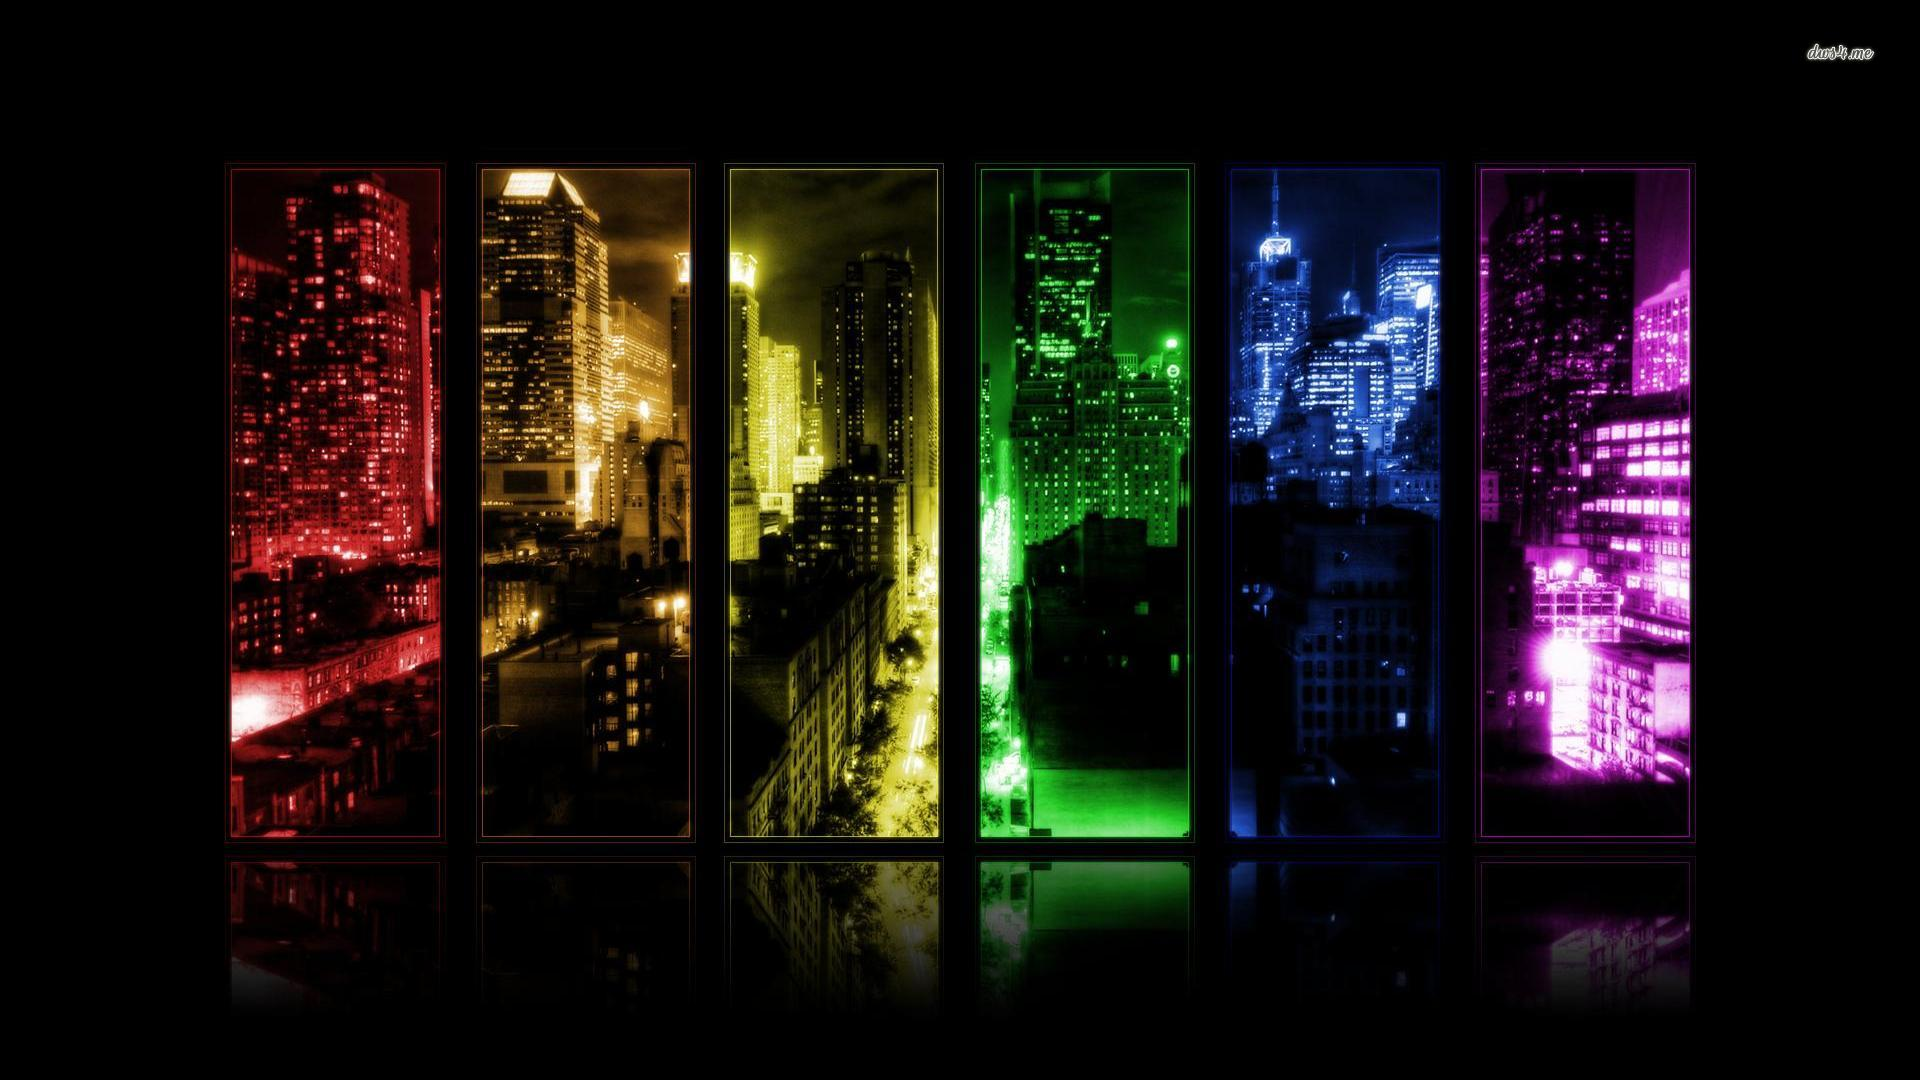 imagescicomimg201313abstract city lights 3618 hd wallpapersjpg 1920x1080